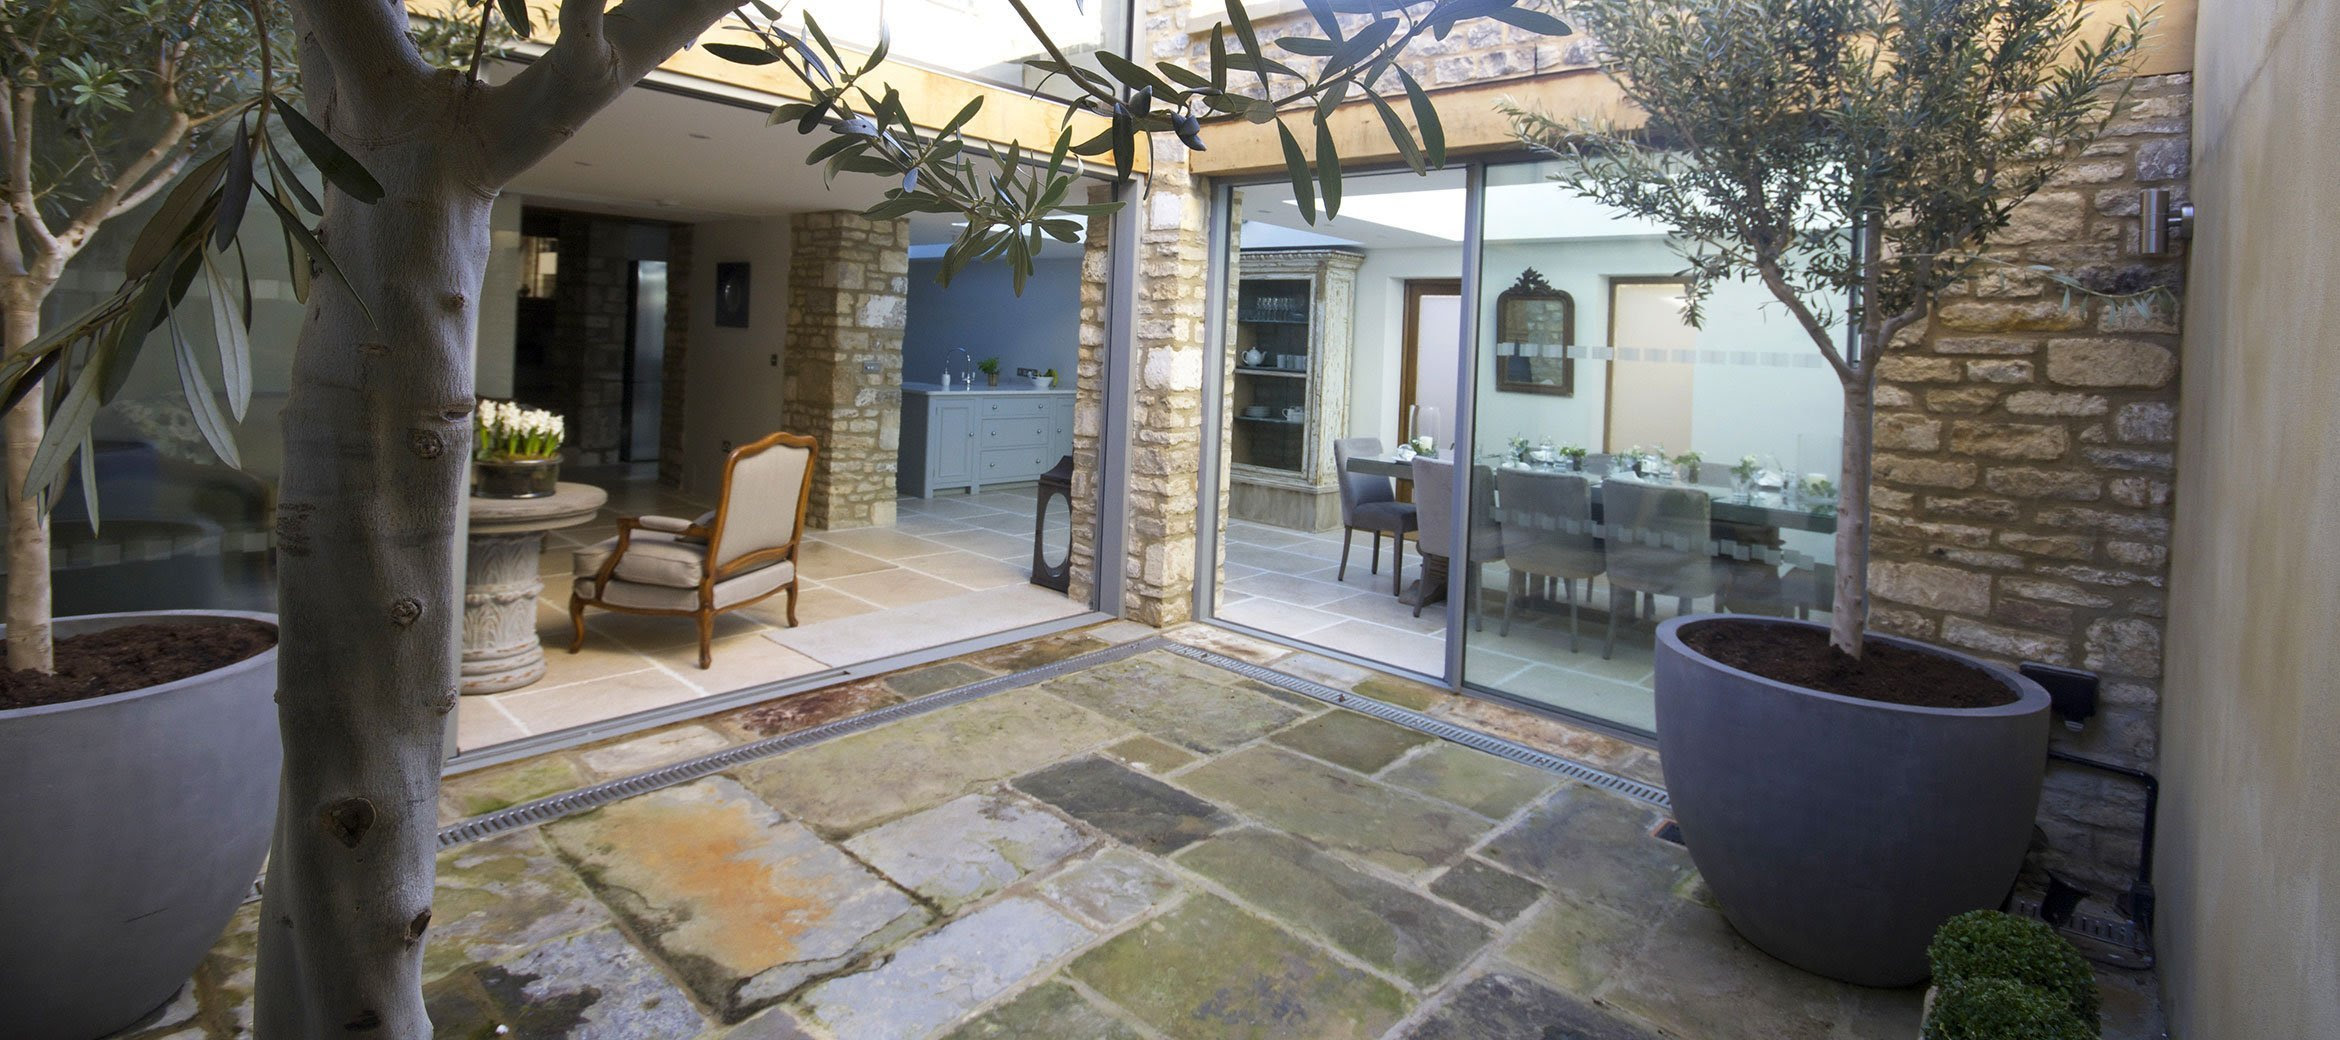 Stunning Cotswold Cottage Courtyard Full Home Tour over on Modern Country Style